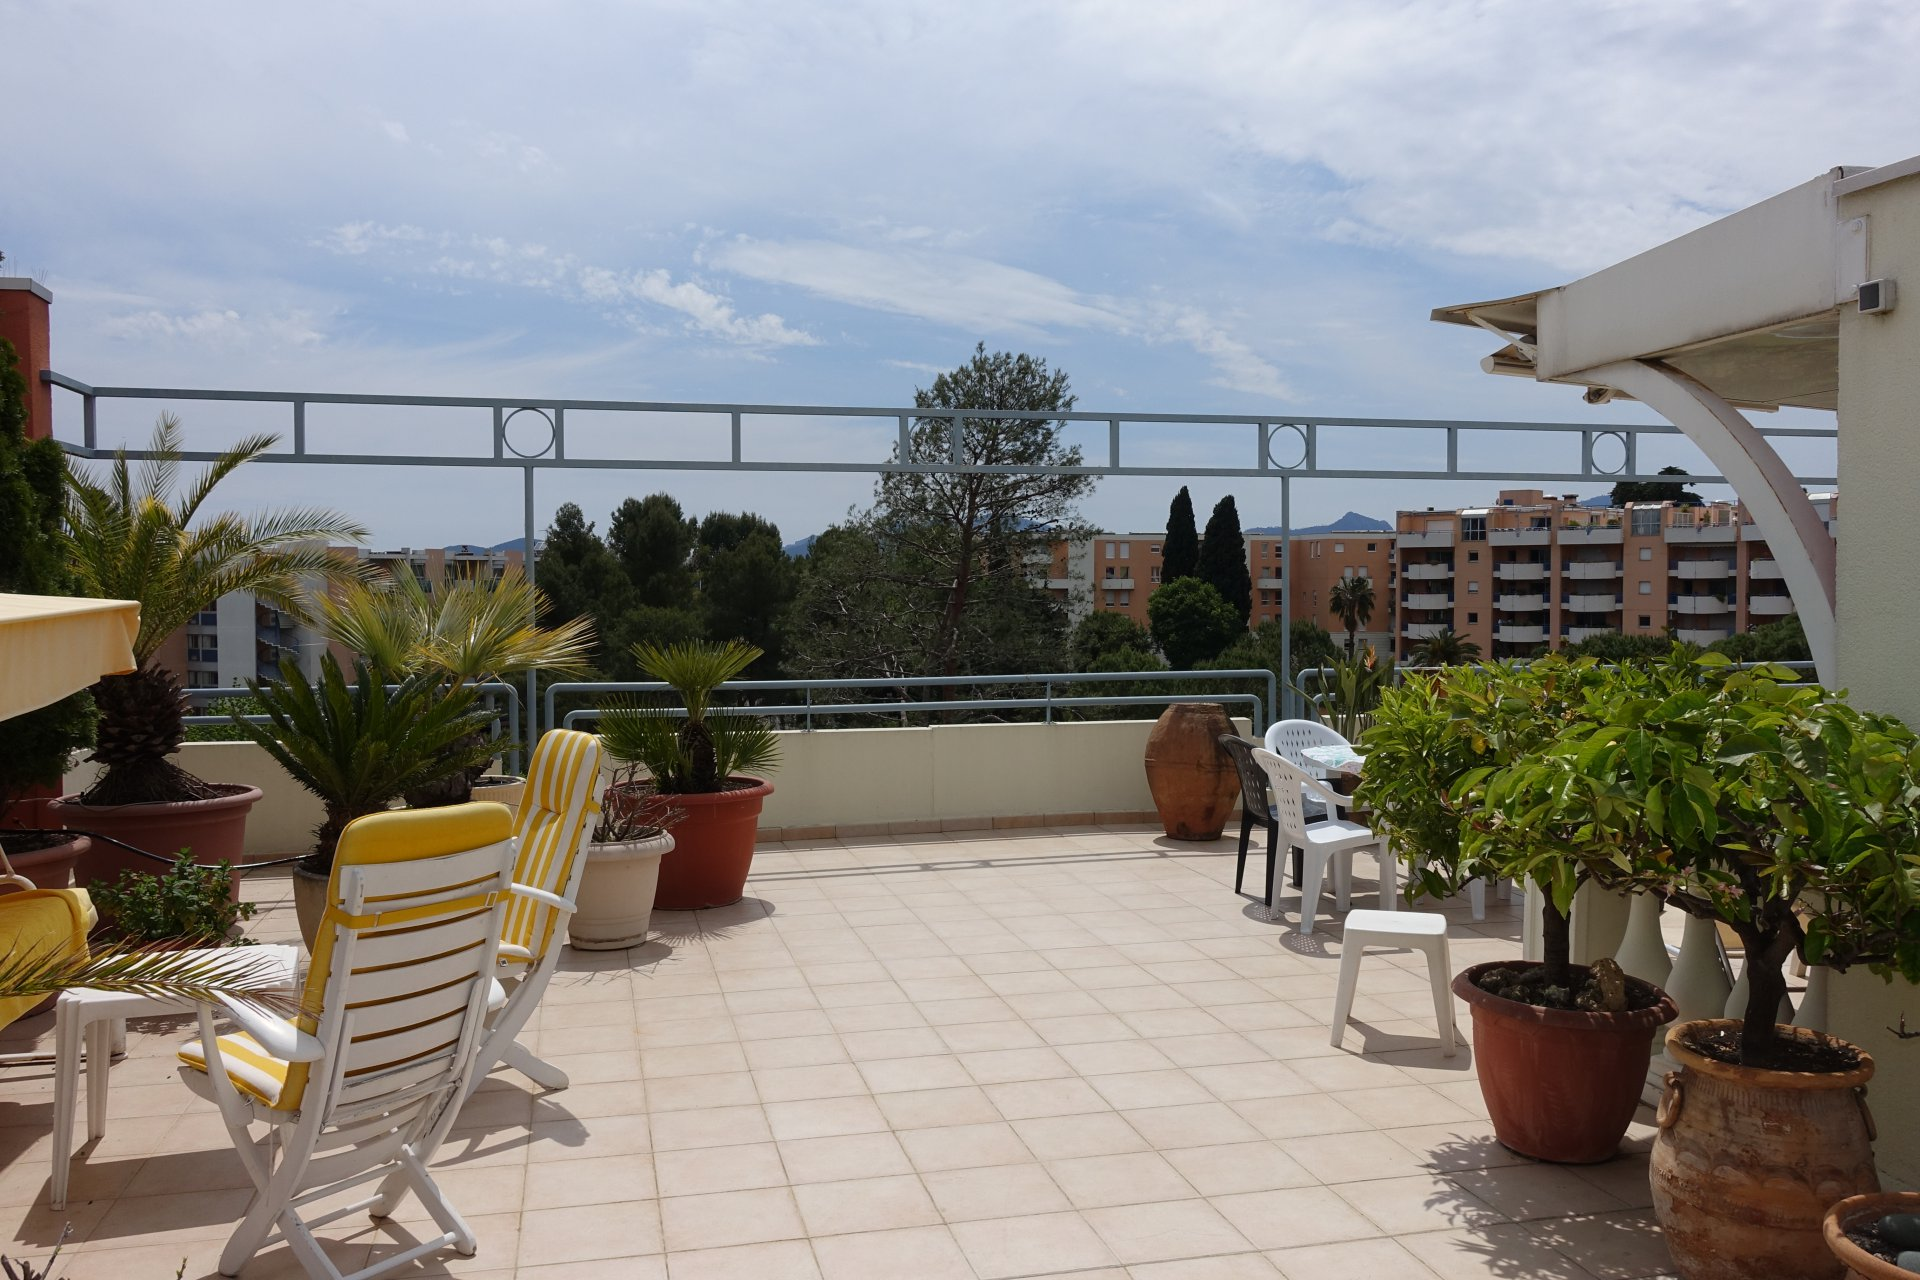 TOP FLOOR 145M² + 165M² Ter. with panoramic VIEW